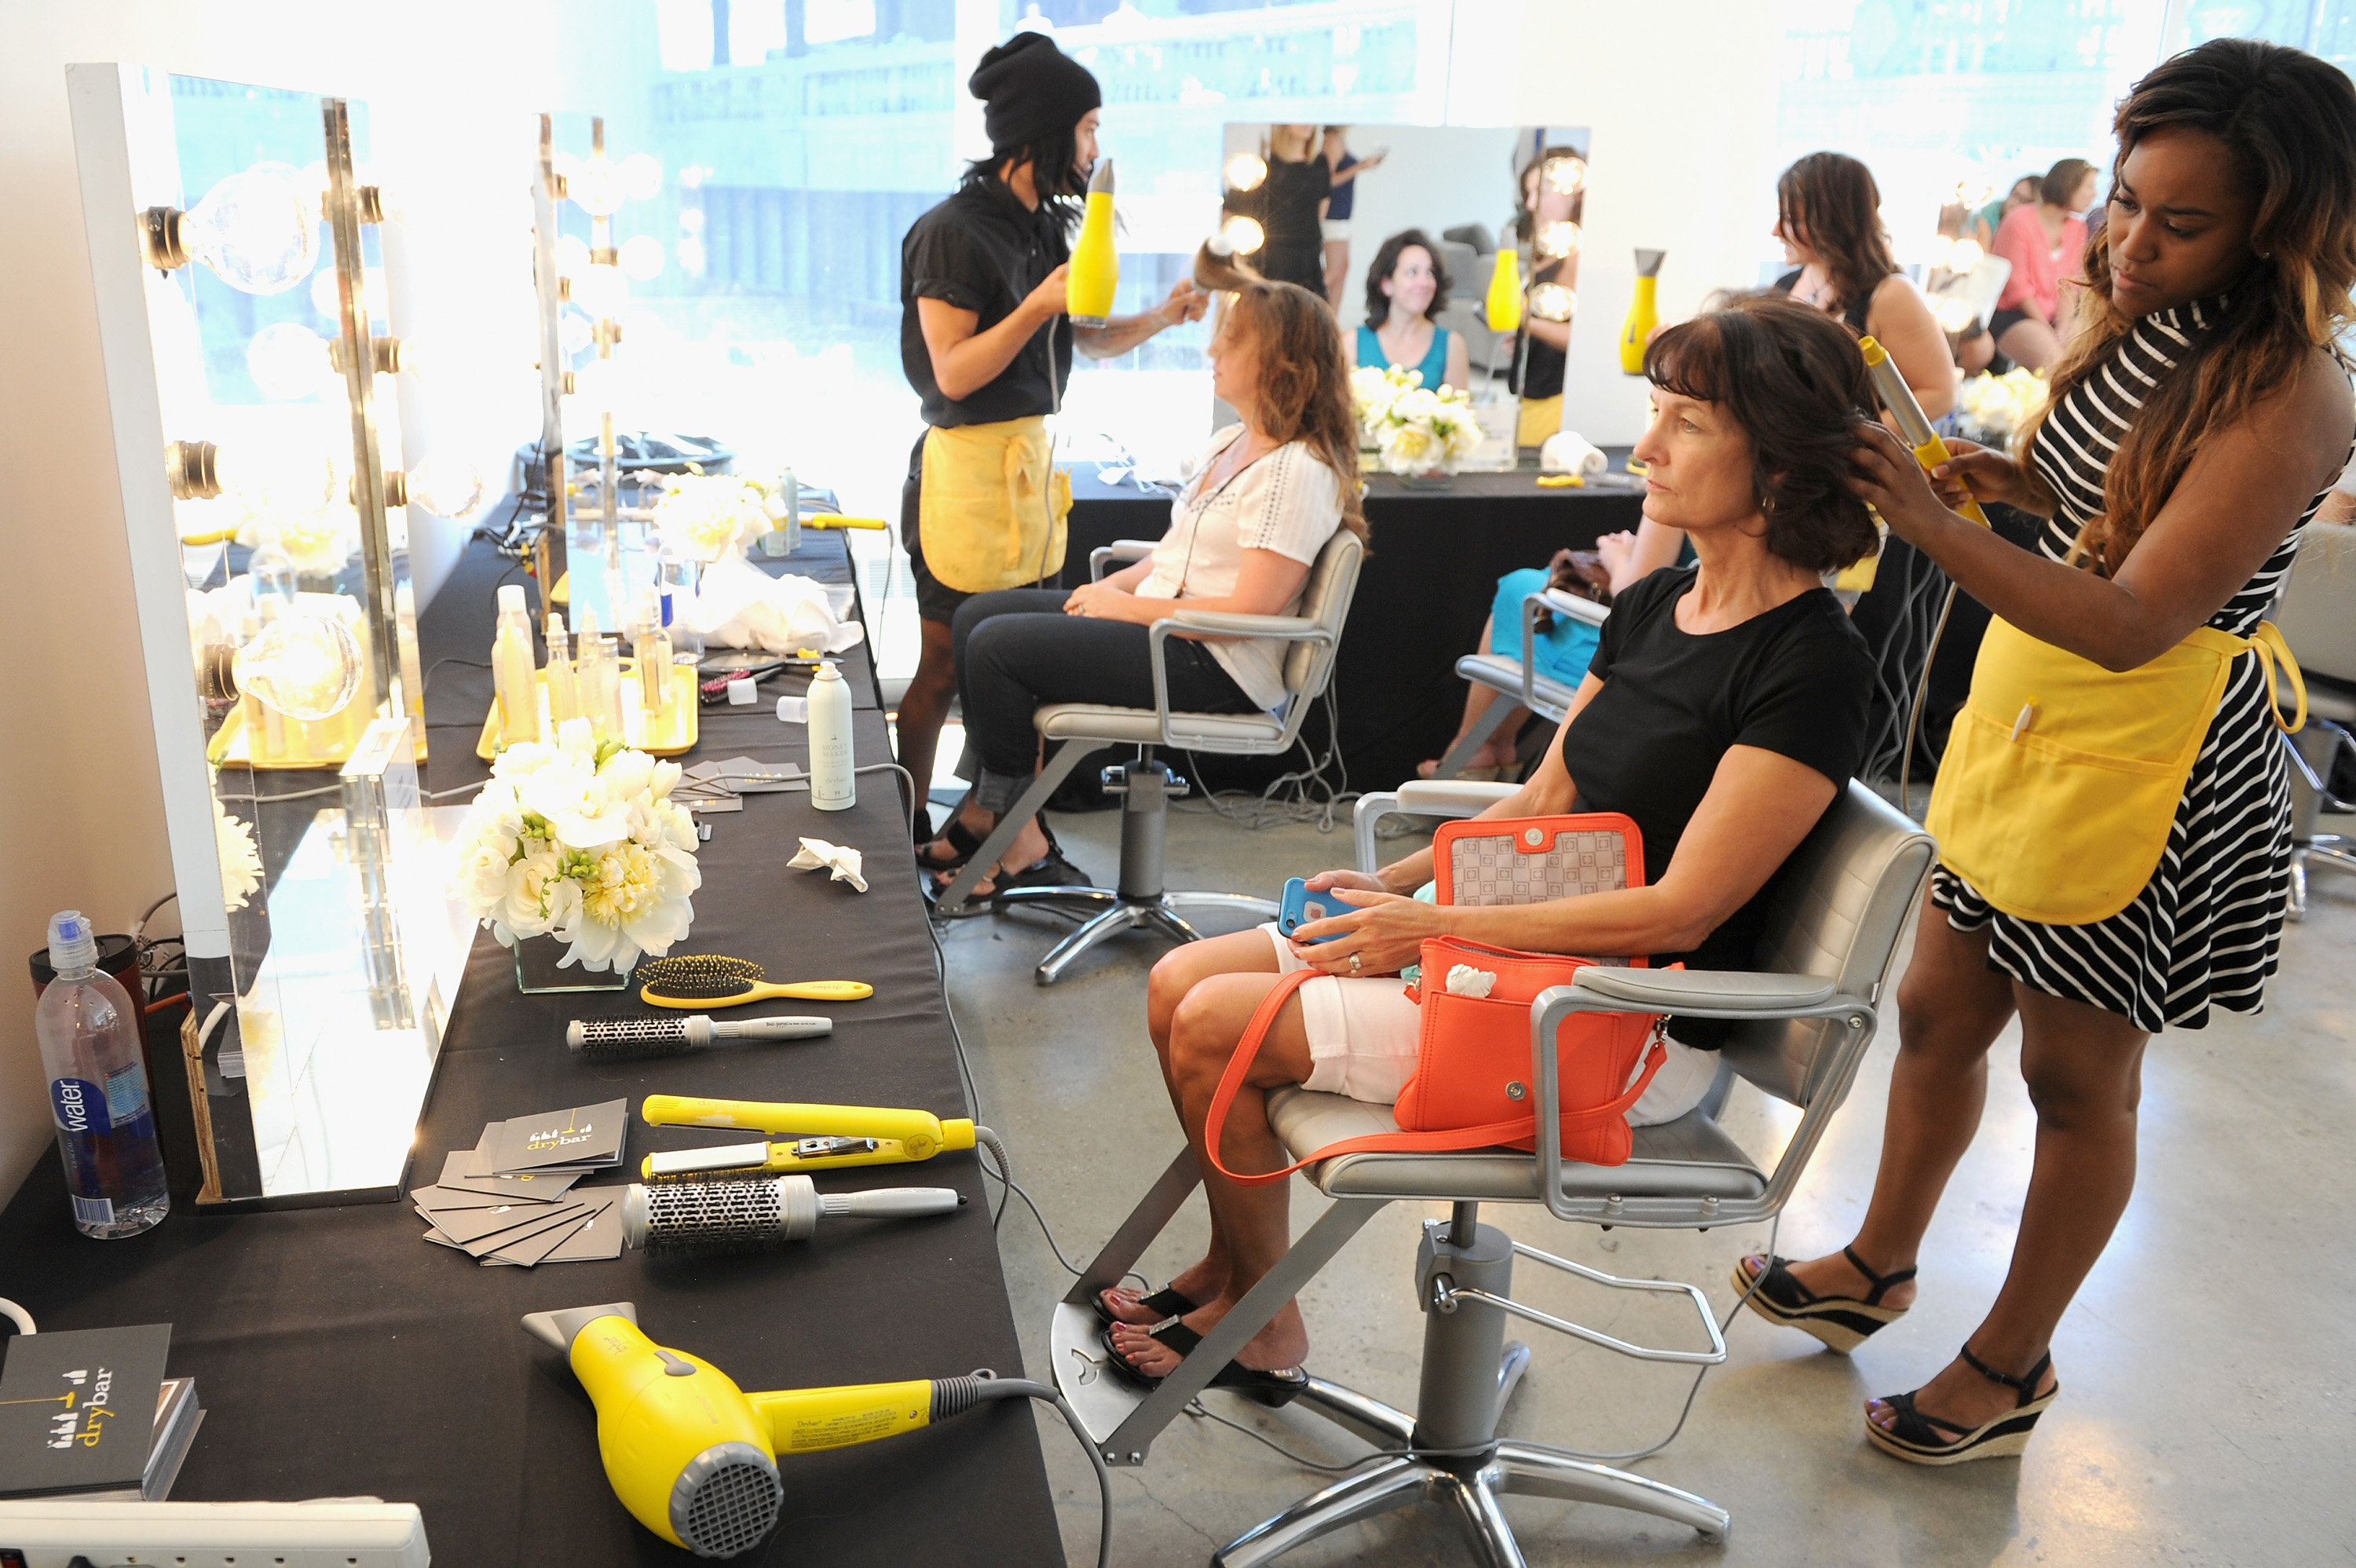 Salon Fly Drybar Dry On The Fly App Sends Hairstylists To Your Door For An